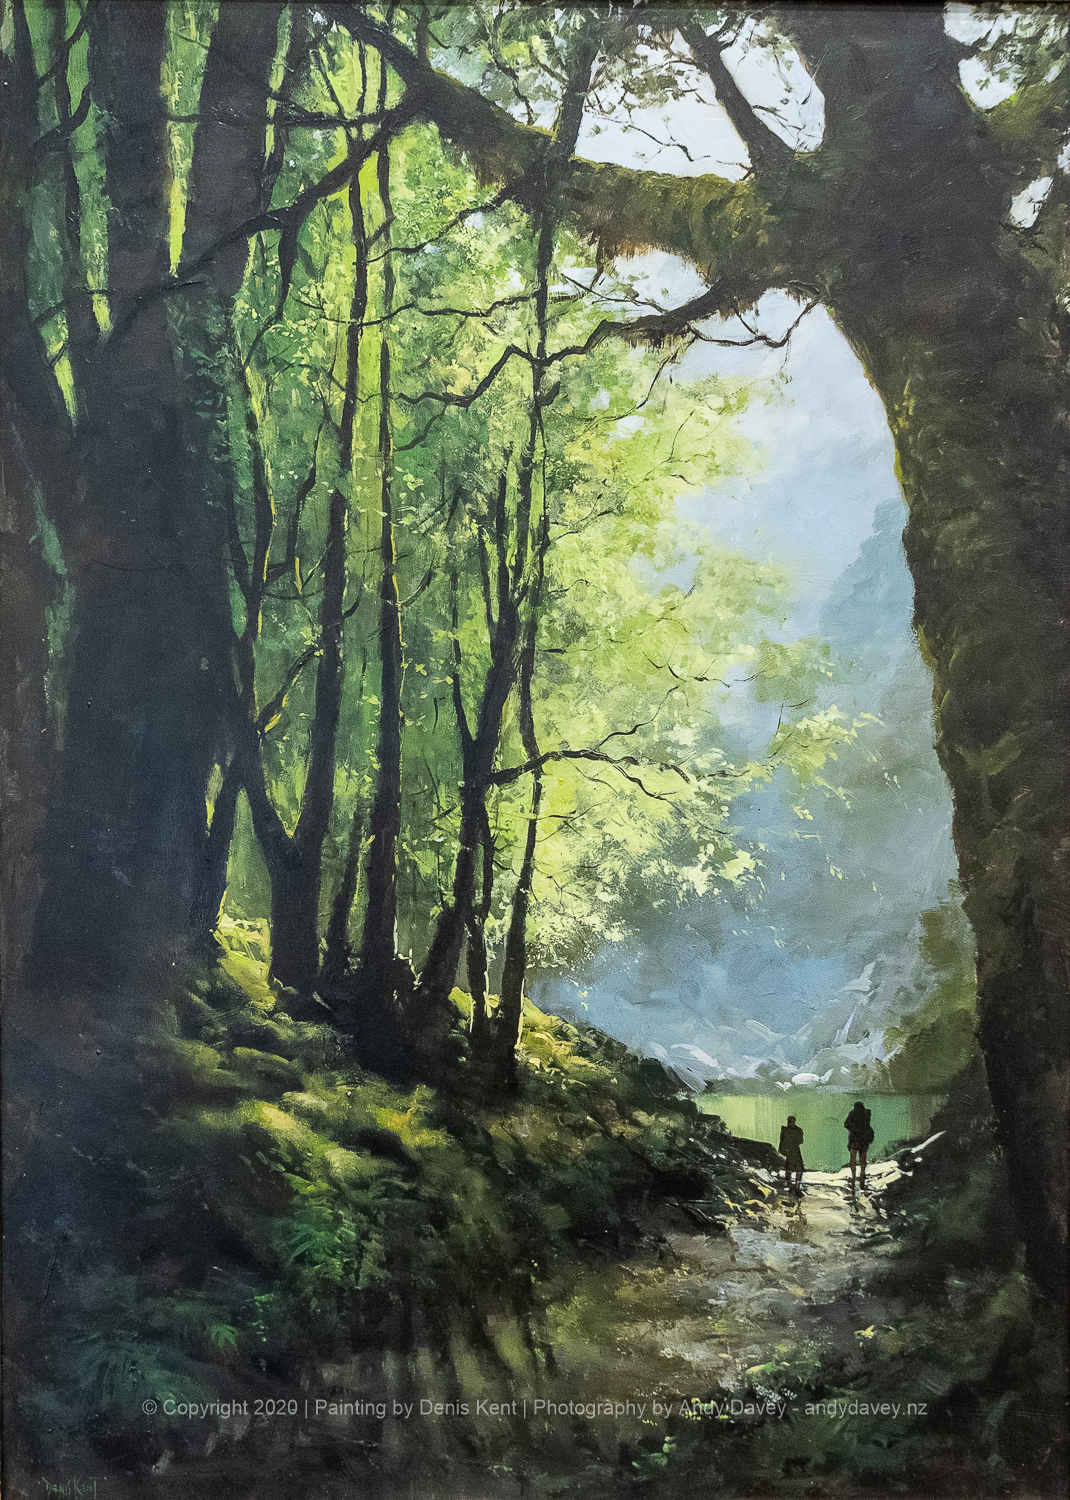 Sunlit Mountain Bush Track - a painting by Denis Kent